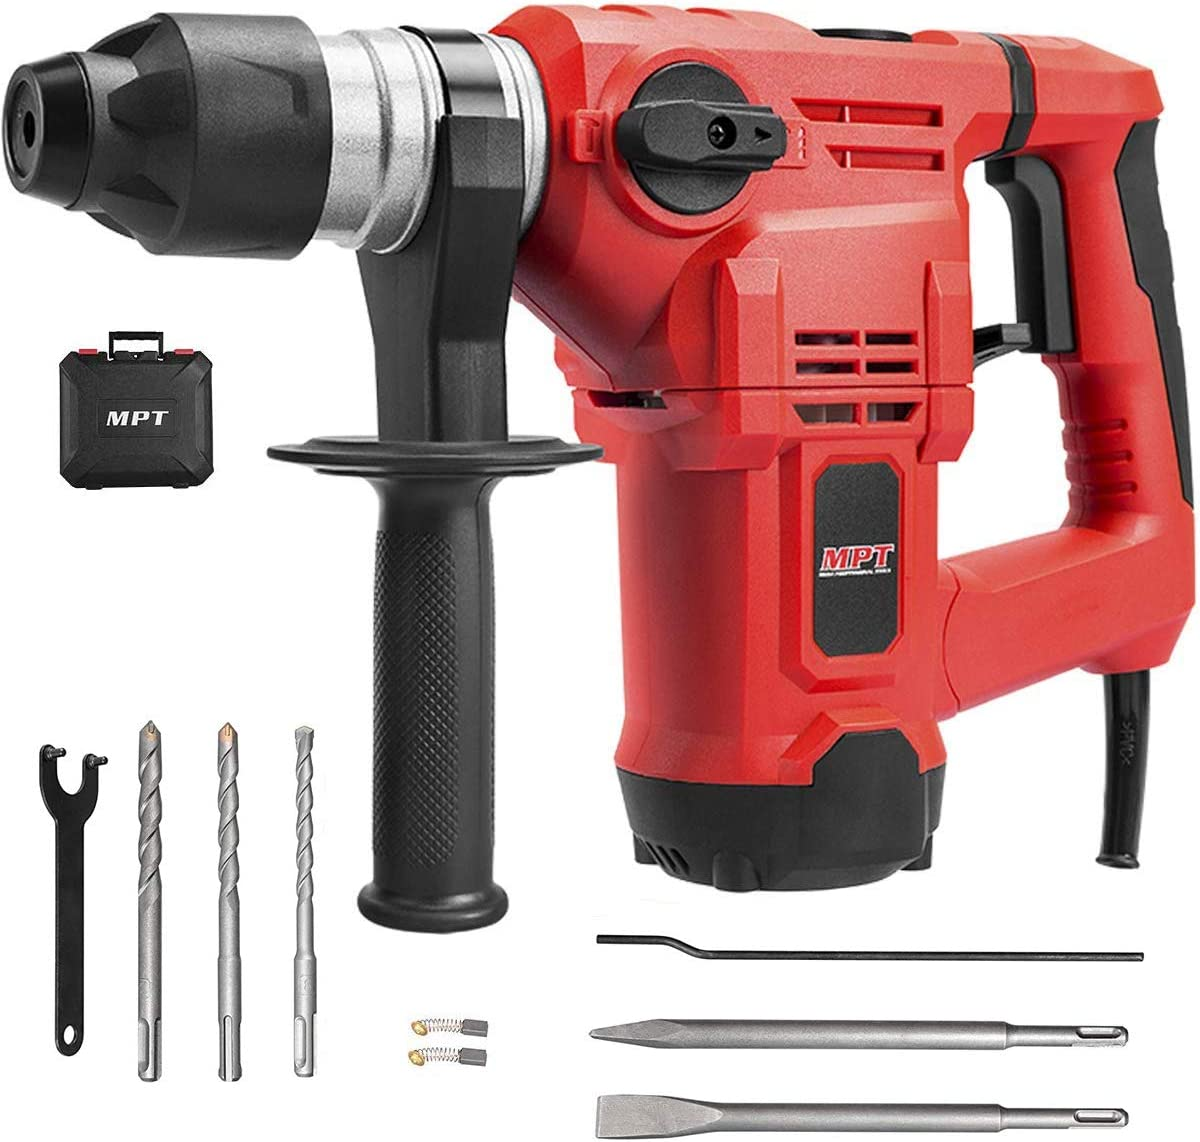 MPT 1-1 4 Inch SDS-plus 12 Amp Heavy Duty Rotary Hammer Drill,3 Functions Vi b ration control Reverse and Variable Speed,Include 3 Drill Bits,Grease,Chisel with Case